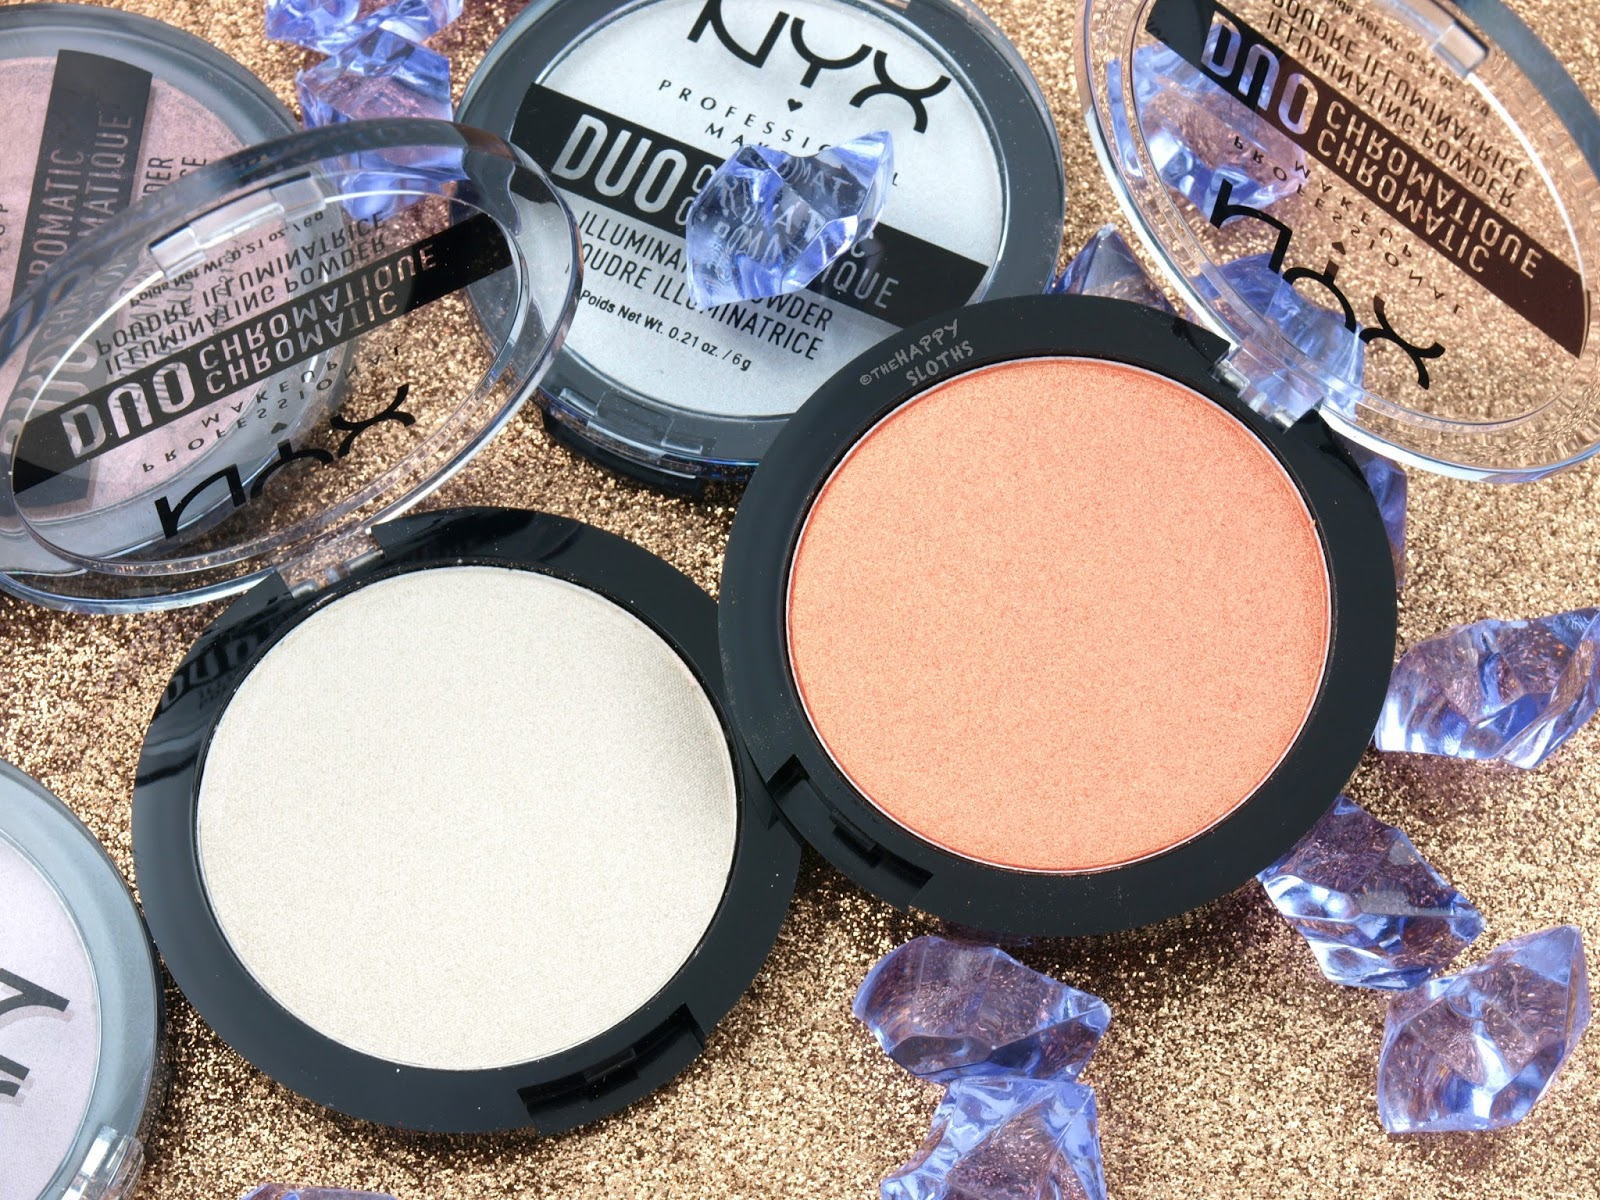 NYX Duo Chromatic Illuminating Powder: Review and Swatches